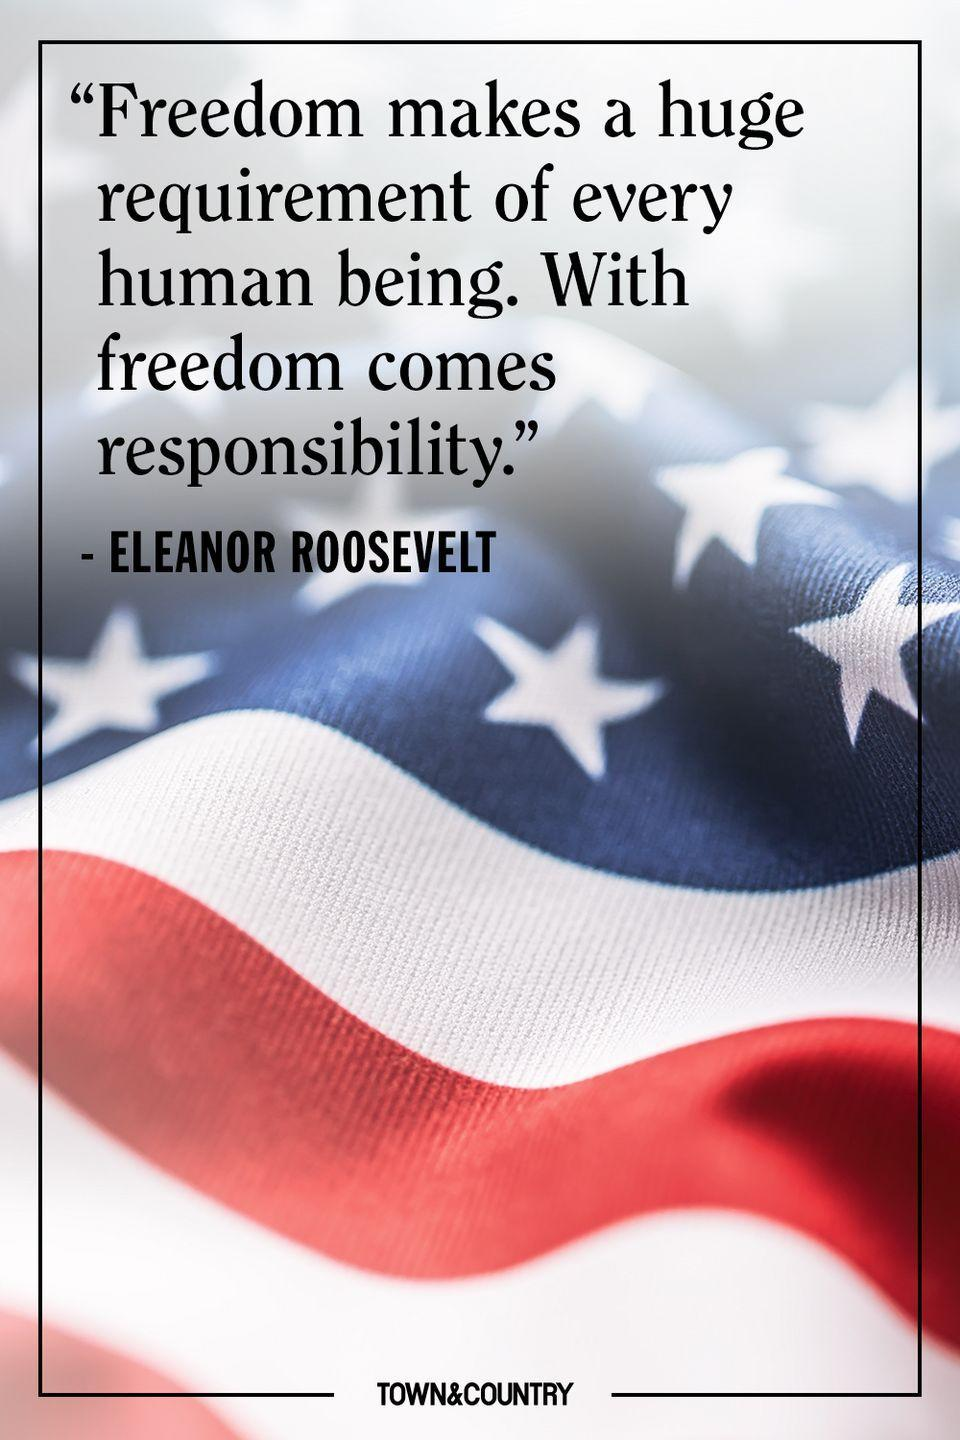 "<p>""Freedom makes a huge requirement of every human being. With freedom comes responsibility."" </p><p>– Eleanor Roosevelt</p>"